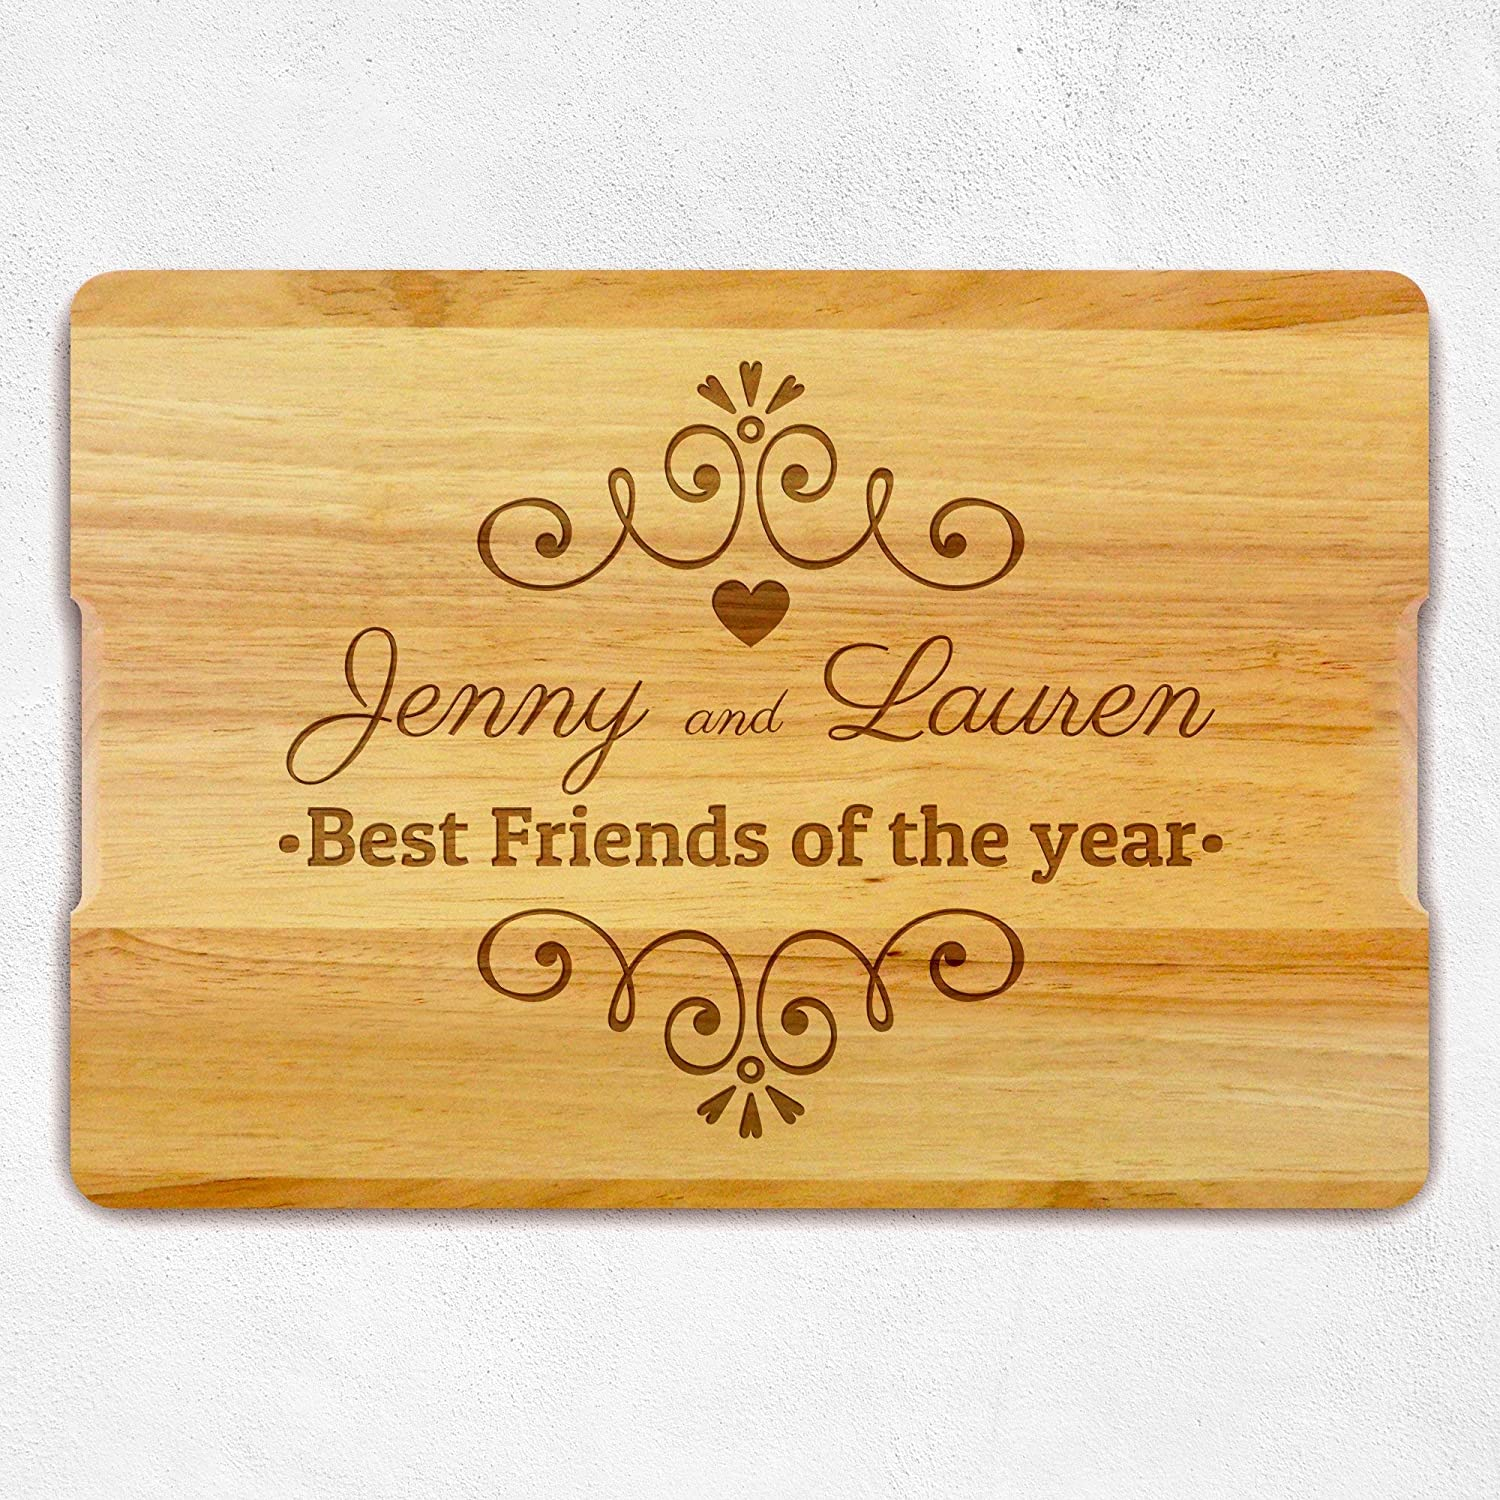 Best Friend Gift Custom Chopping Board Anniversary gift Personalized Gift Gift for Friends Christmas Gift Wooden Cutting Board